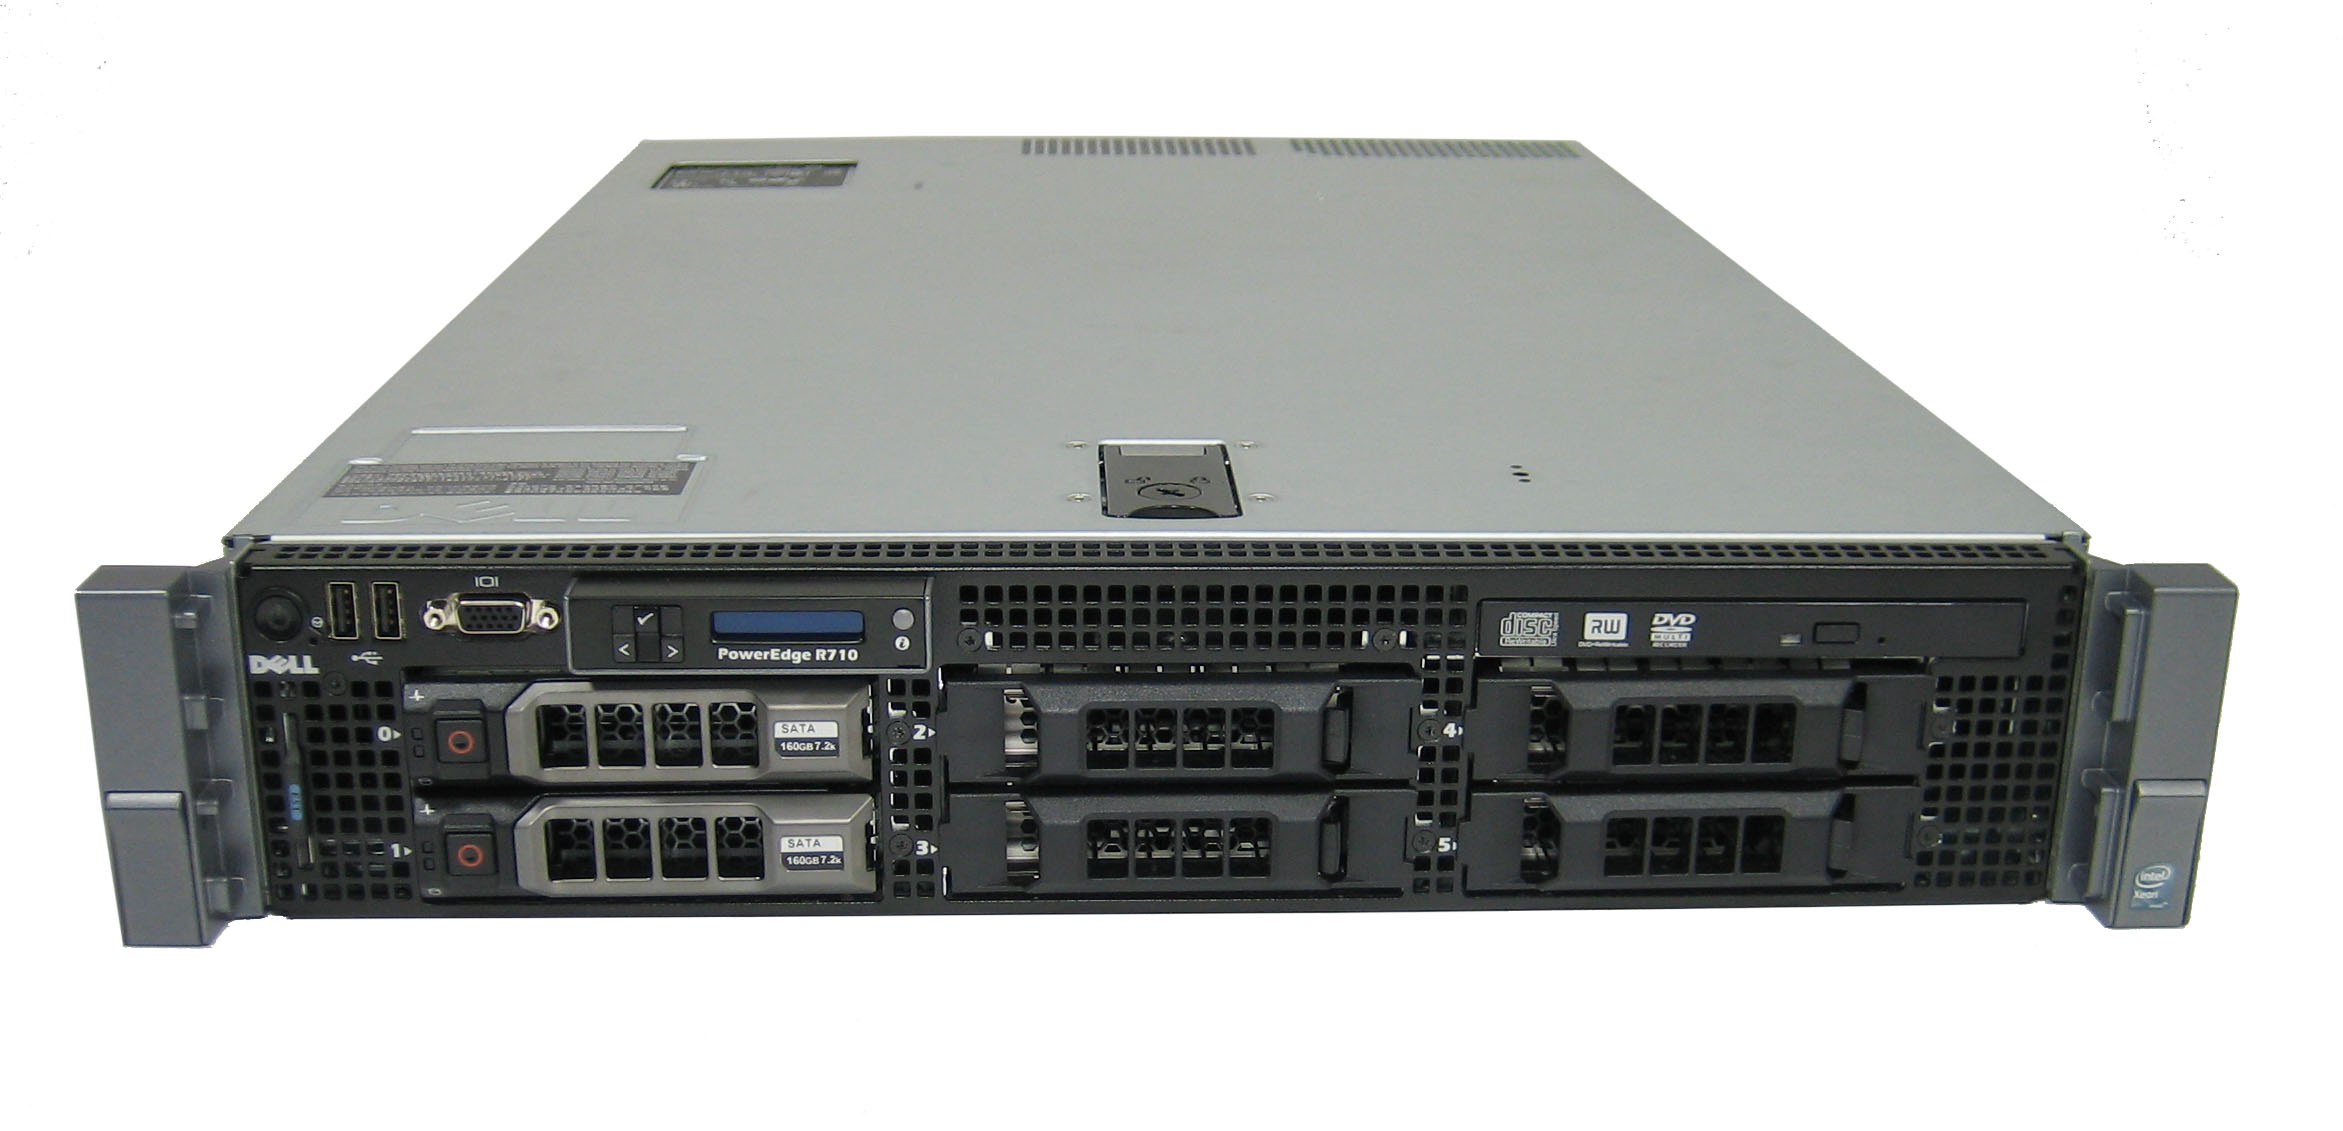 MÁY CHỦ SERVER DELL POWEREDGE R710 E5620 2.4Ghz